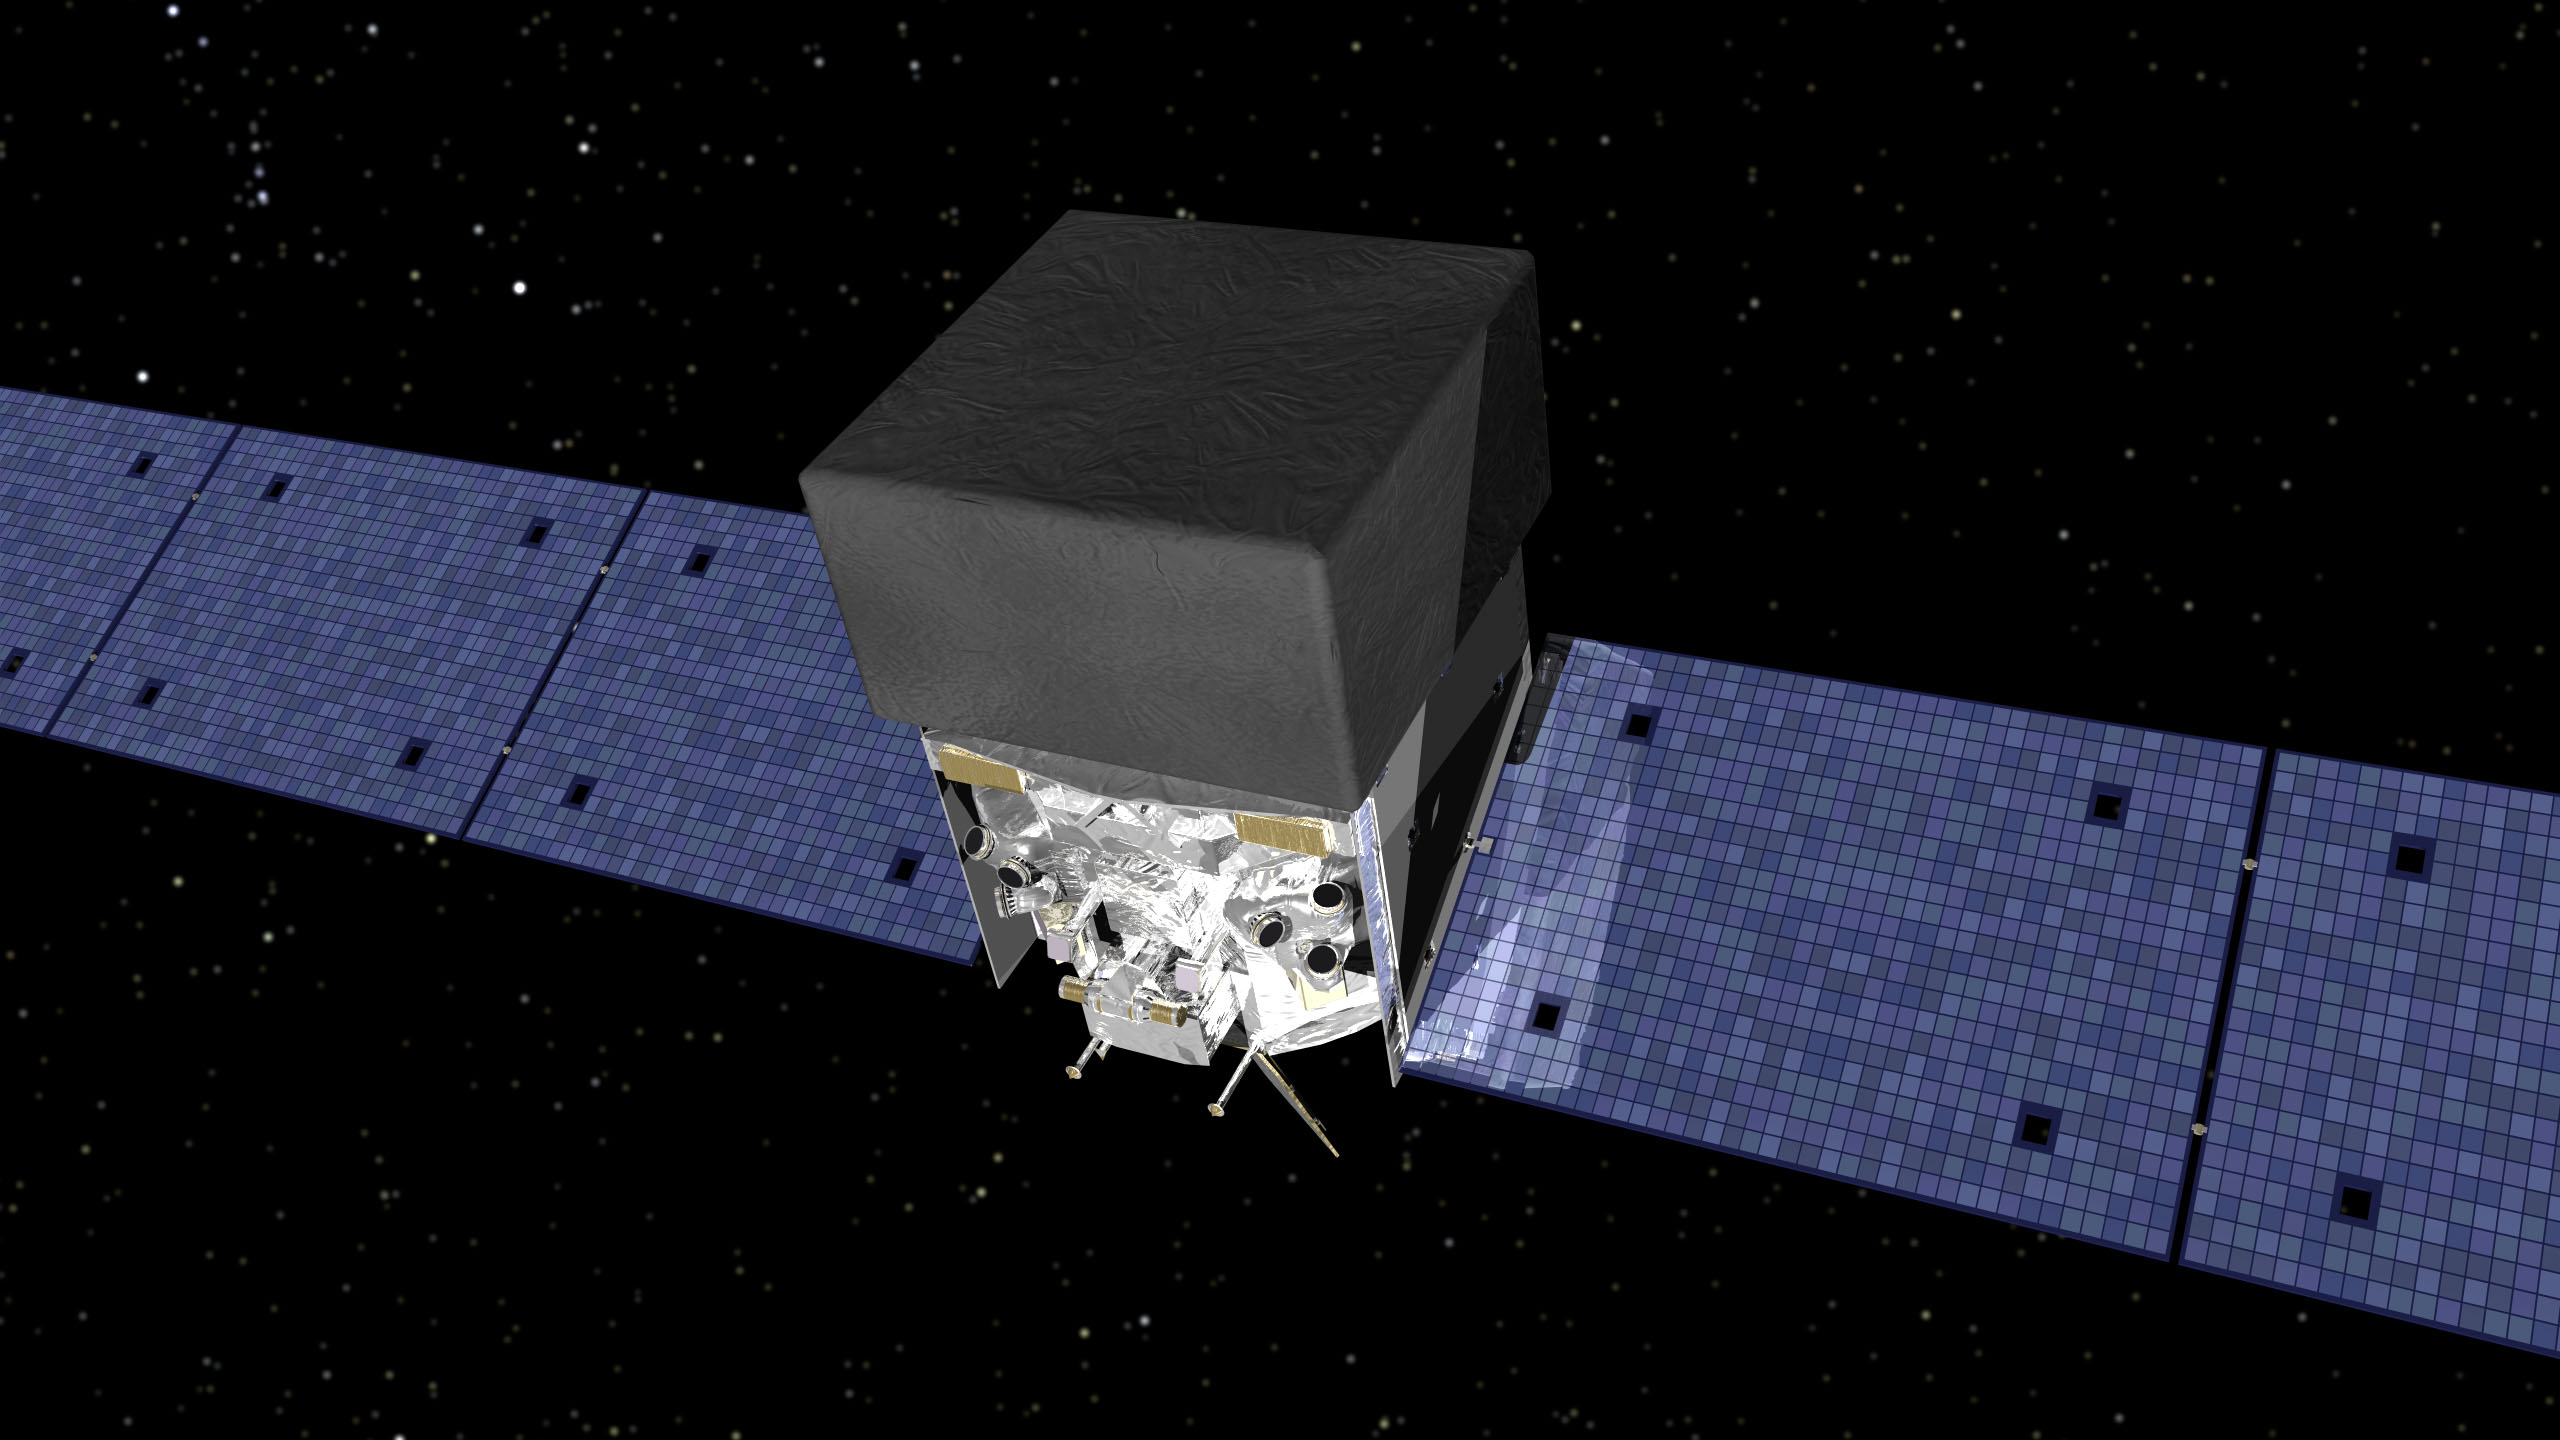 About The Fermi Gamma Ray Space Telescope Nasa